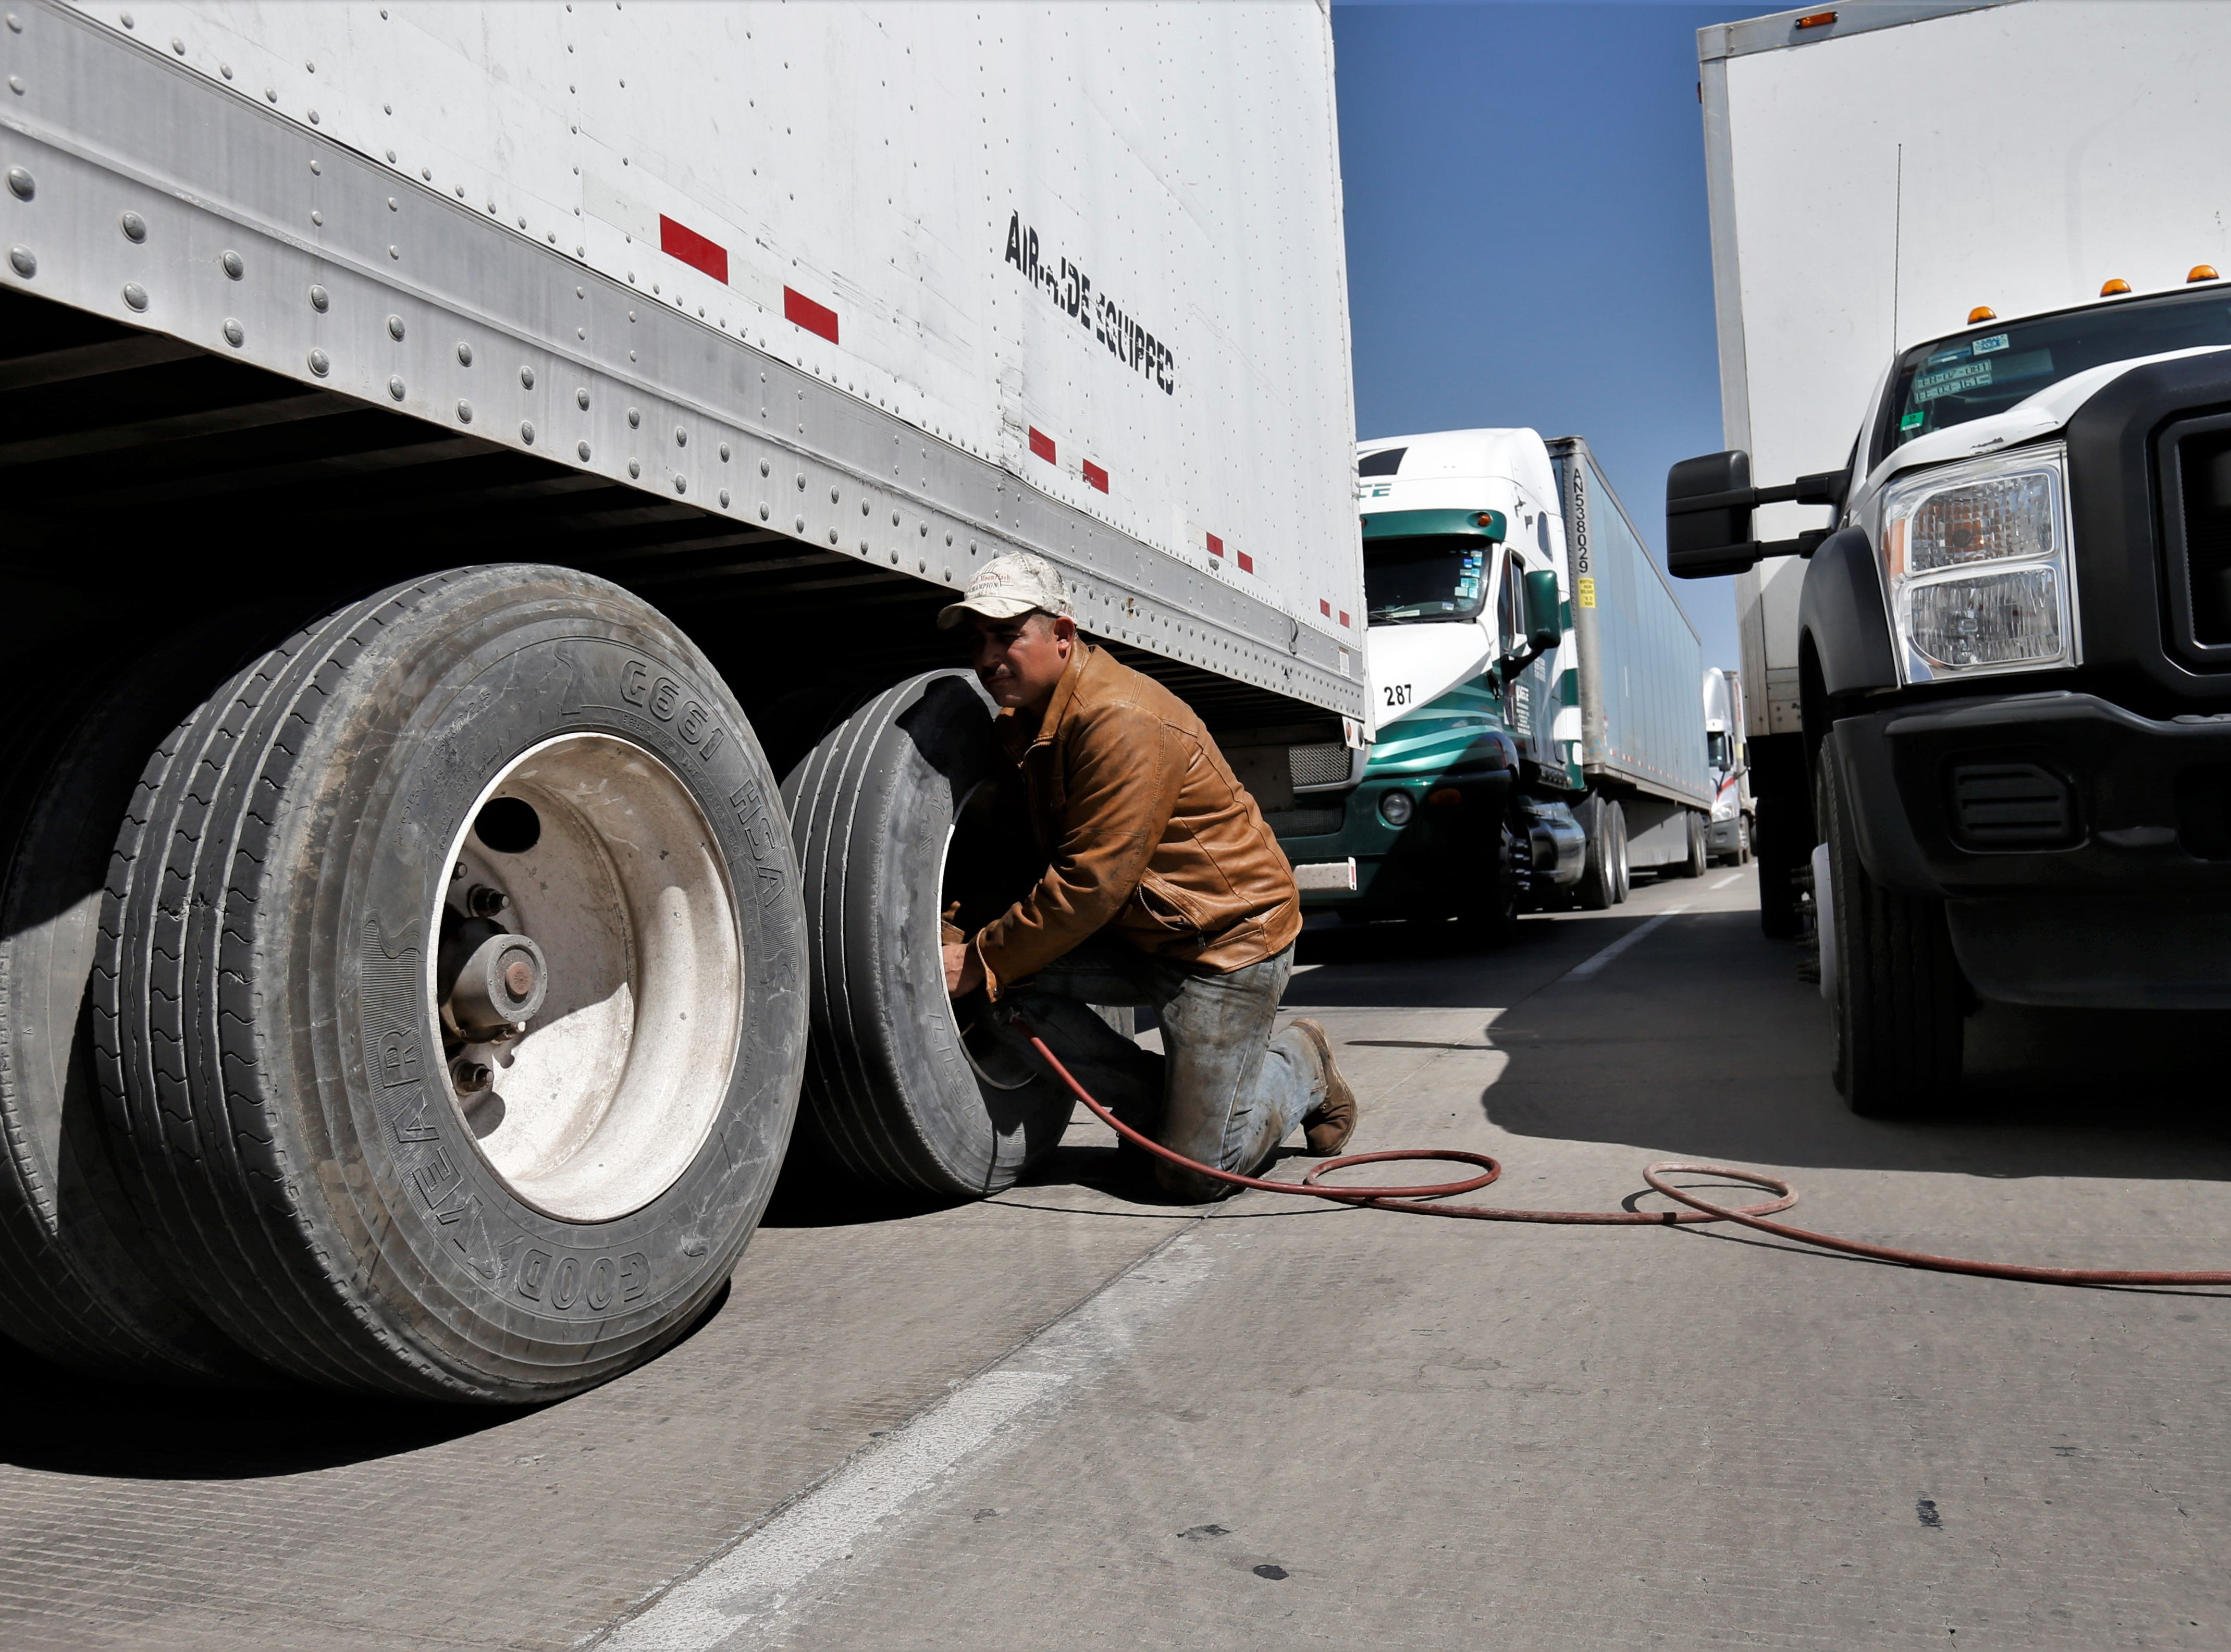 Juarez's CNC Logistics employee helps inflate wheels of commercial trucks waiting to cross the international Bridge of the Americas.